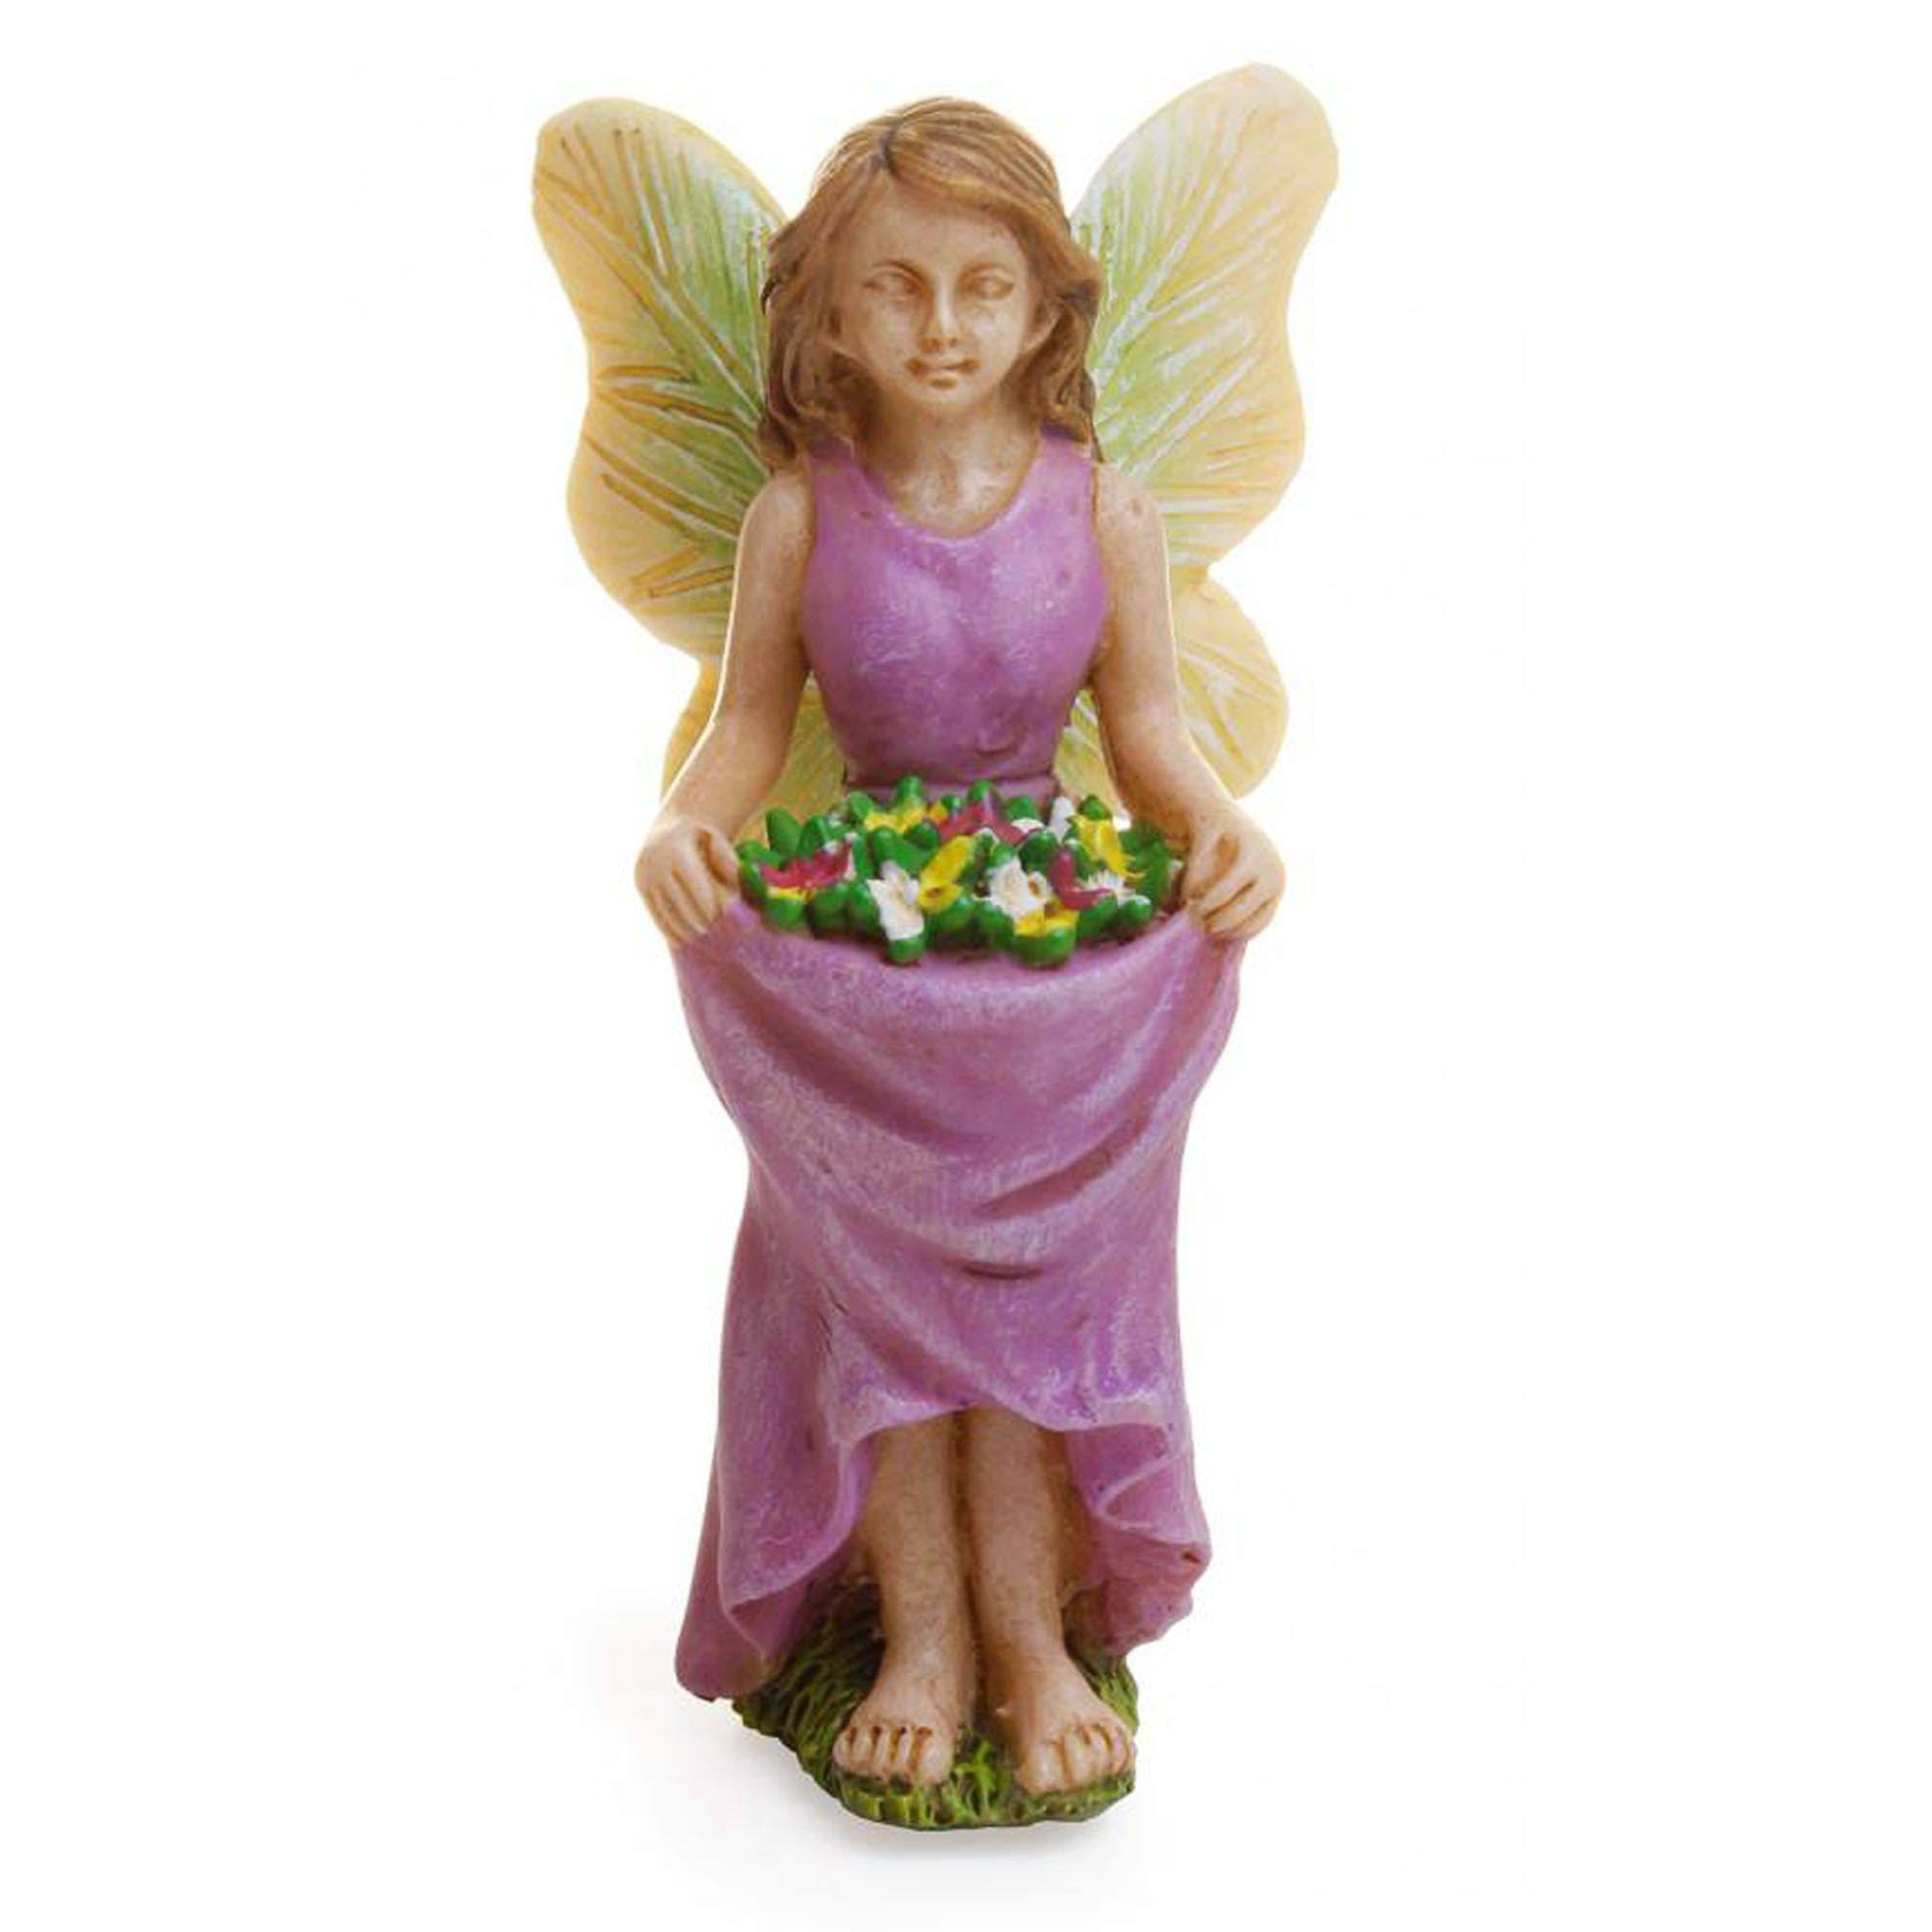 Marshall Miniature Garden Ornament - Skirt Full of Flowers Fairy